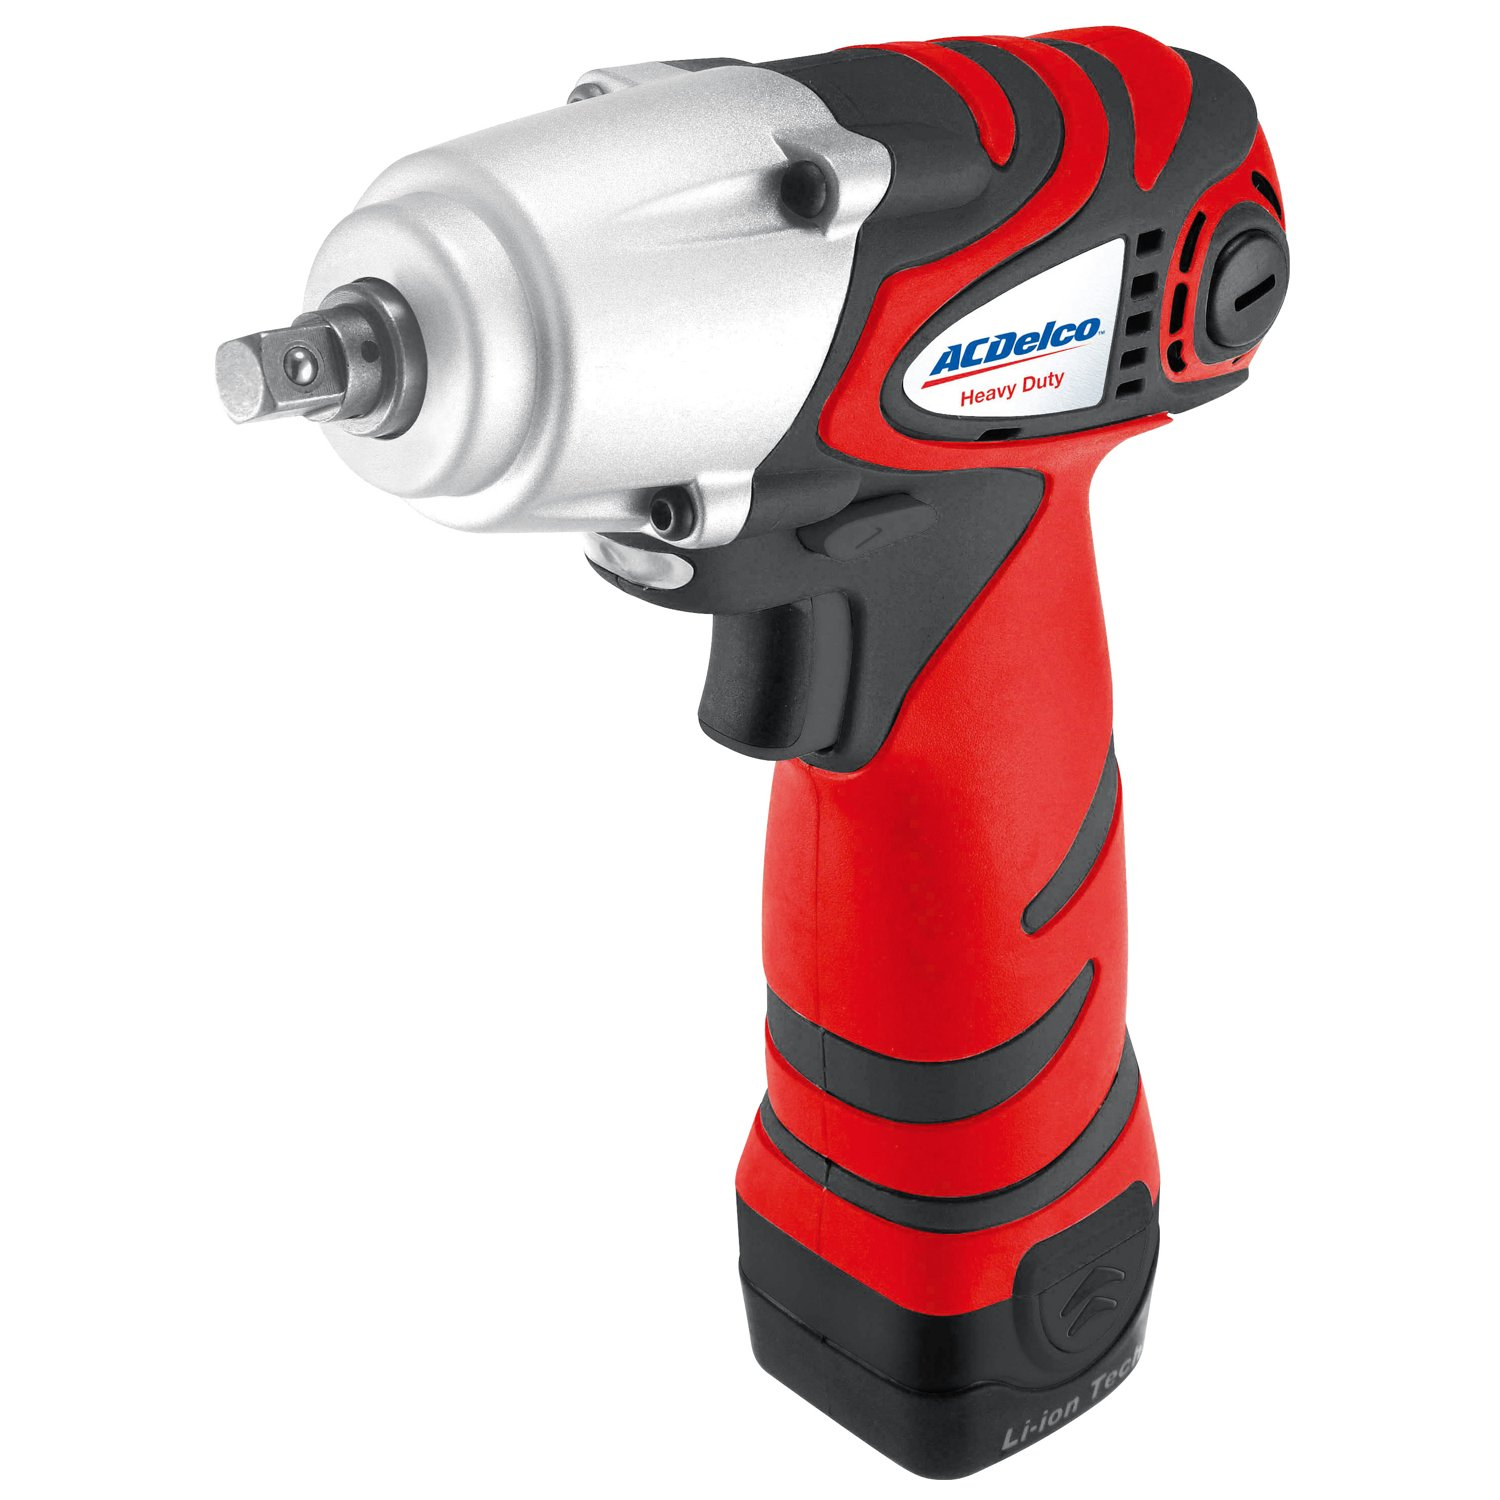 ACDelco BLOWOUT Power Impact Wrench, 75 ft-lbs Li-ion 8V 3/8-inch - Bare Tool ARI810T (Impact Wrench Kit)